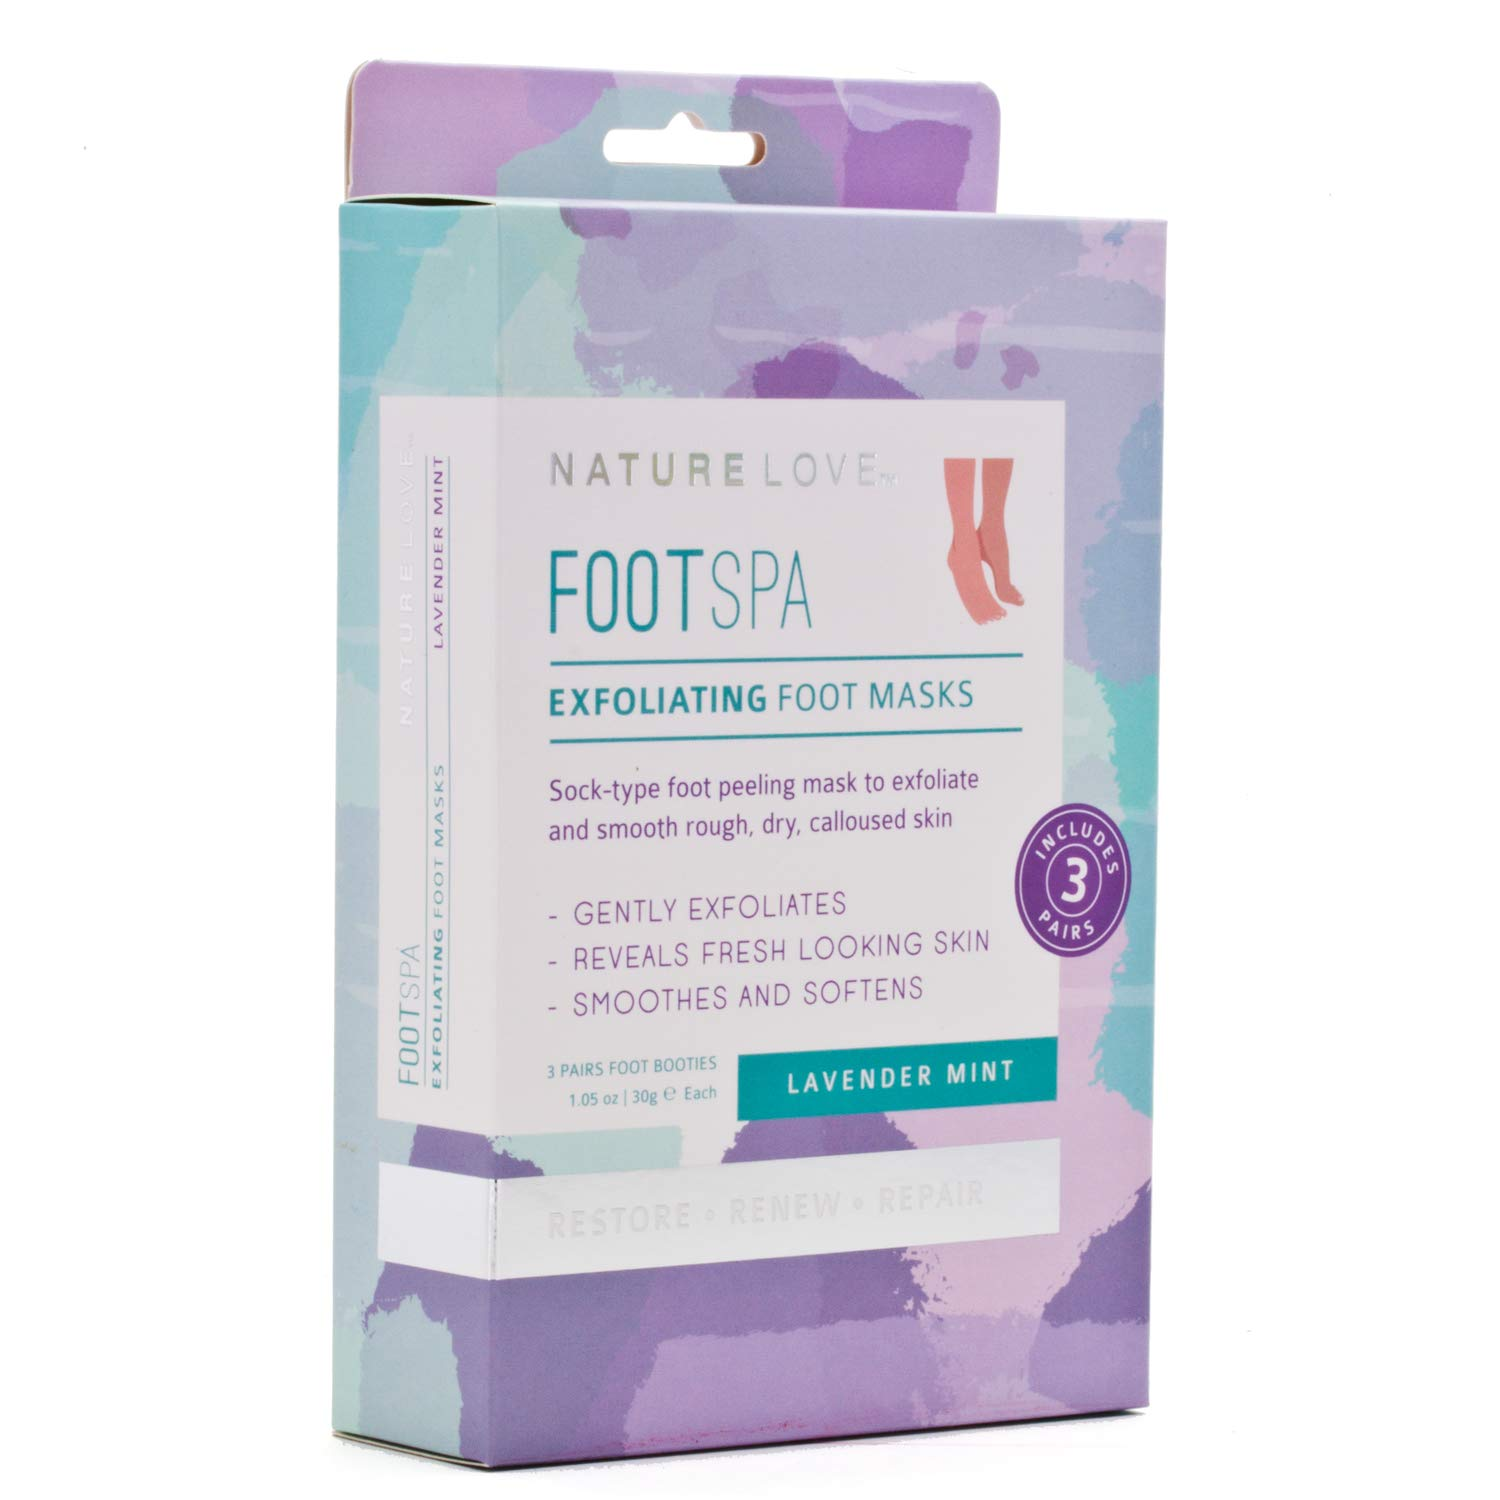 Nature Love Exfoliating Foot Mask, Lavender Mint, 3 pack